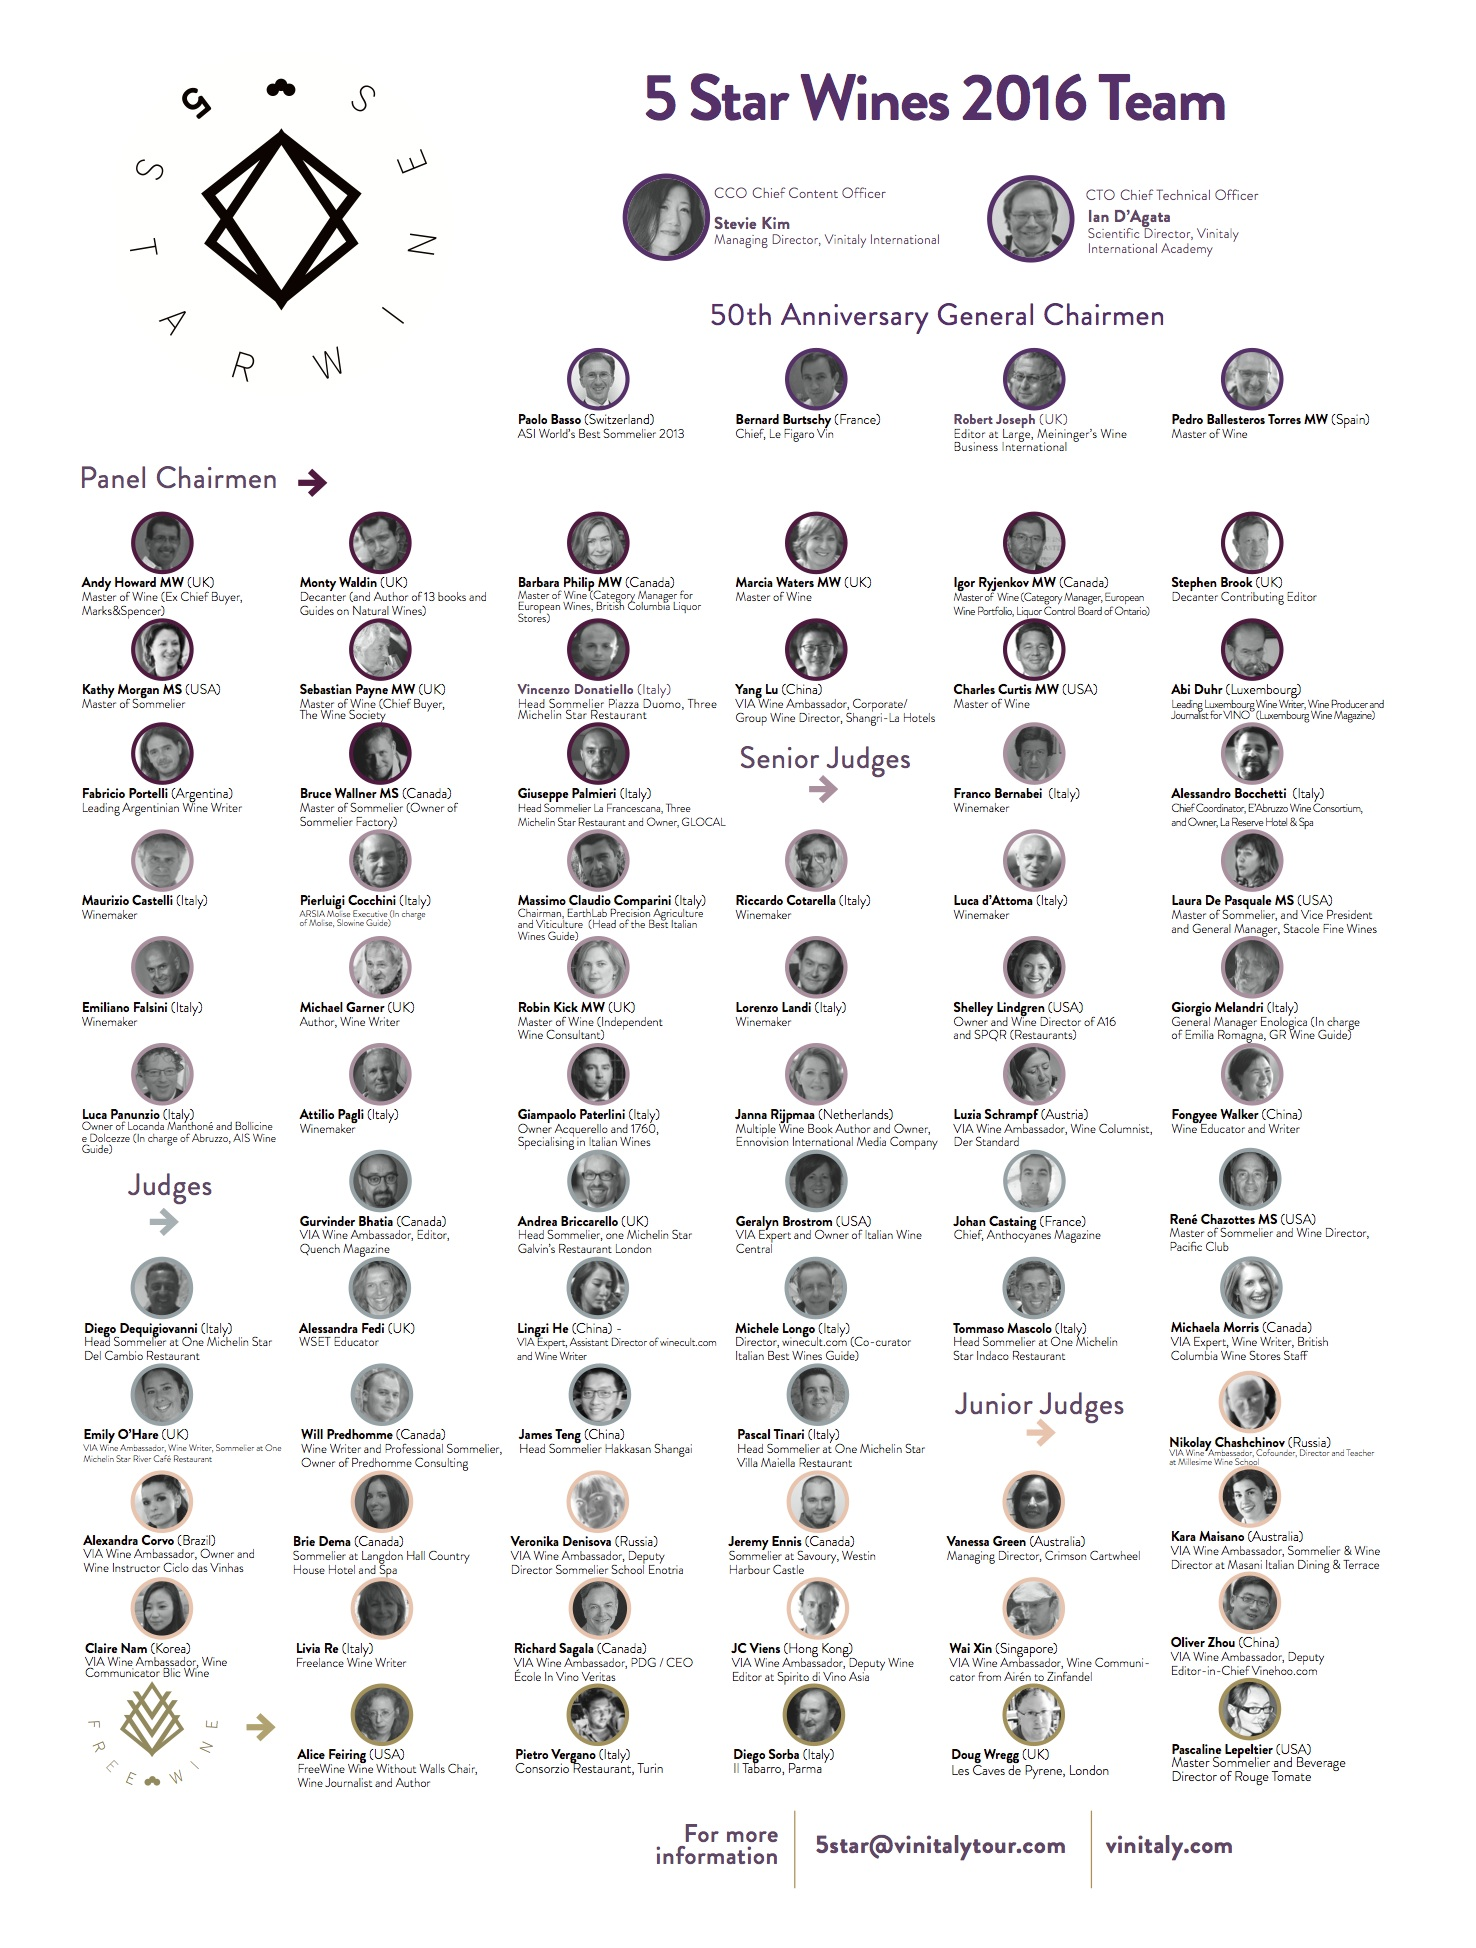 Judges announced for the new Vinitaly 5 Star Wines Award